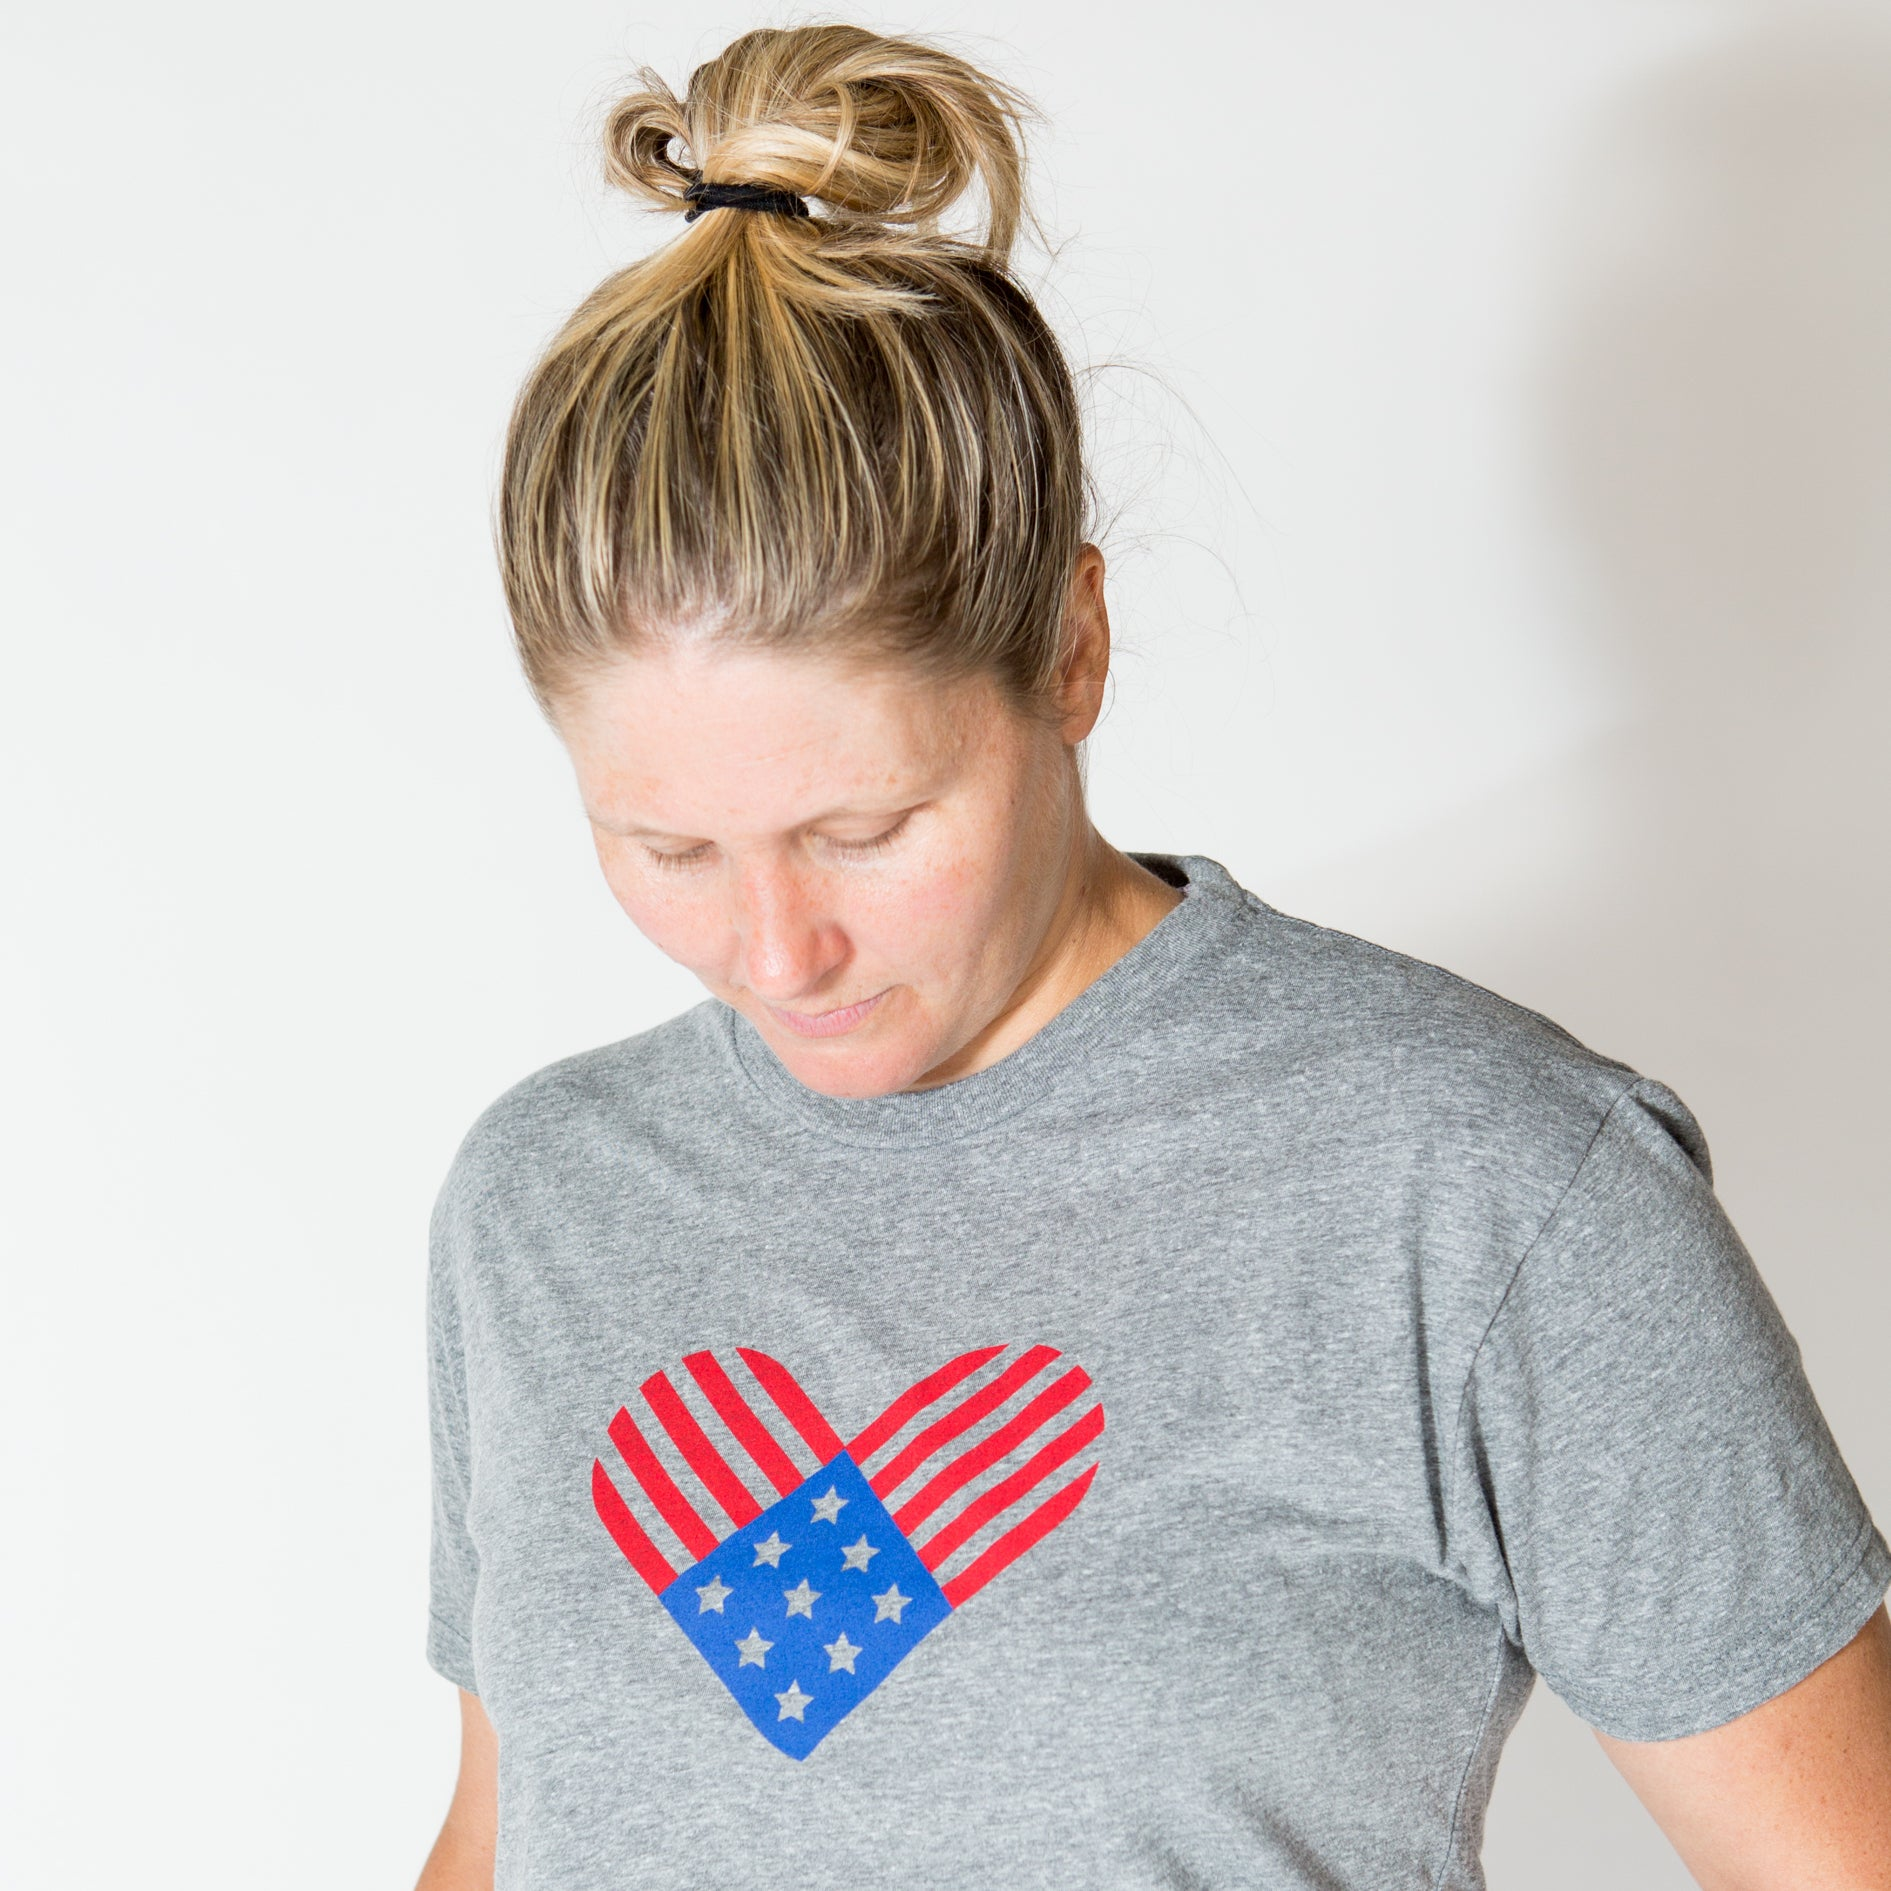 Woman with head looking down at the red and blue version of the american flag on a tee-shirt.